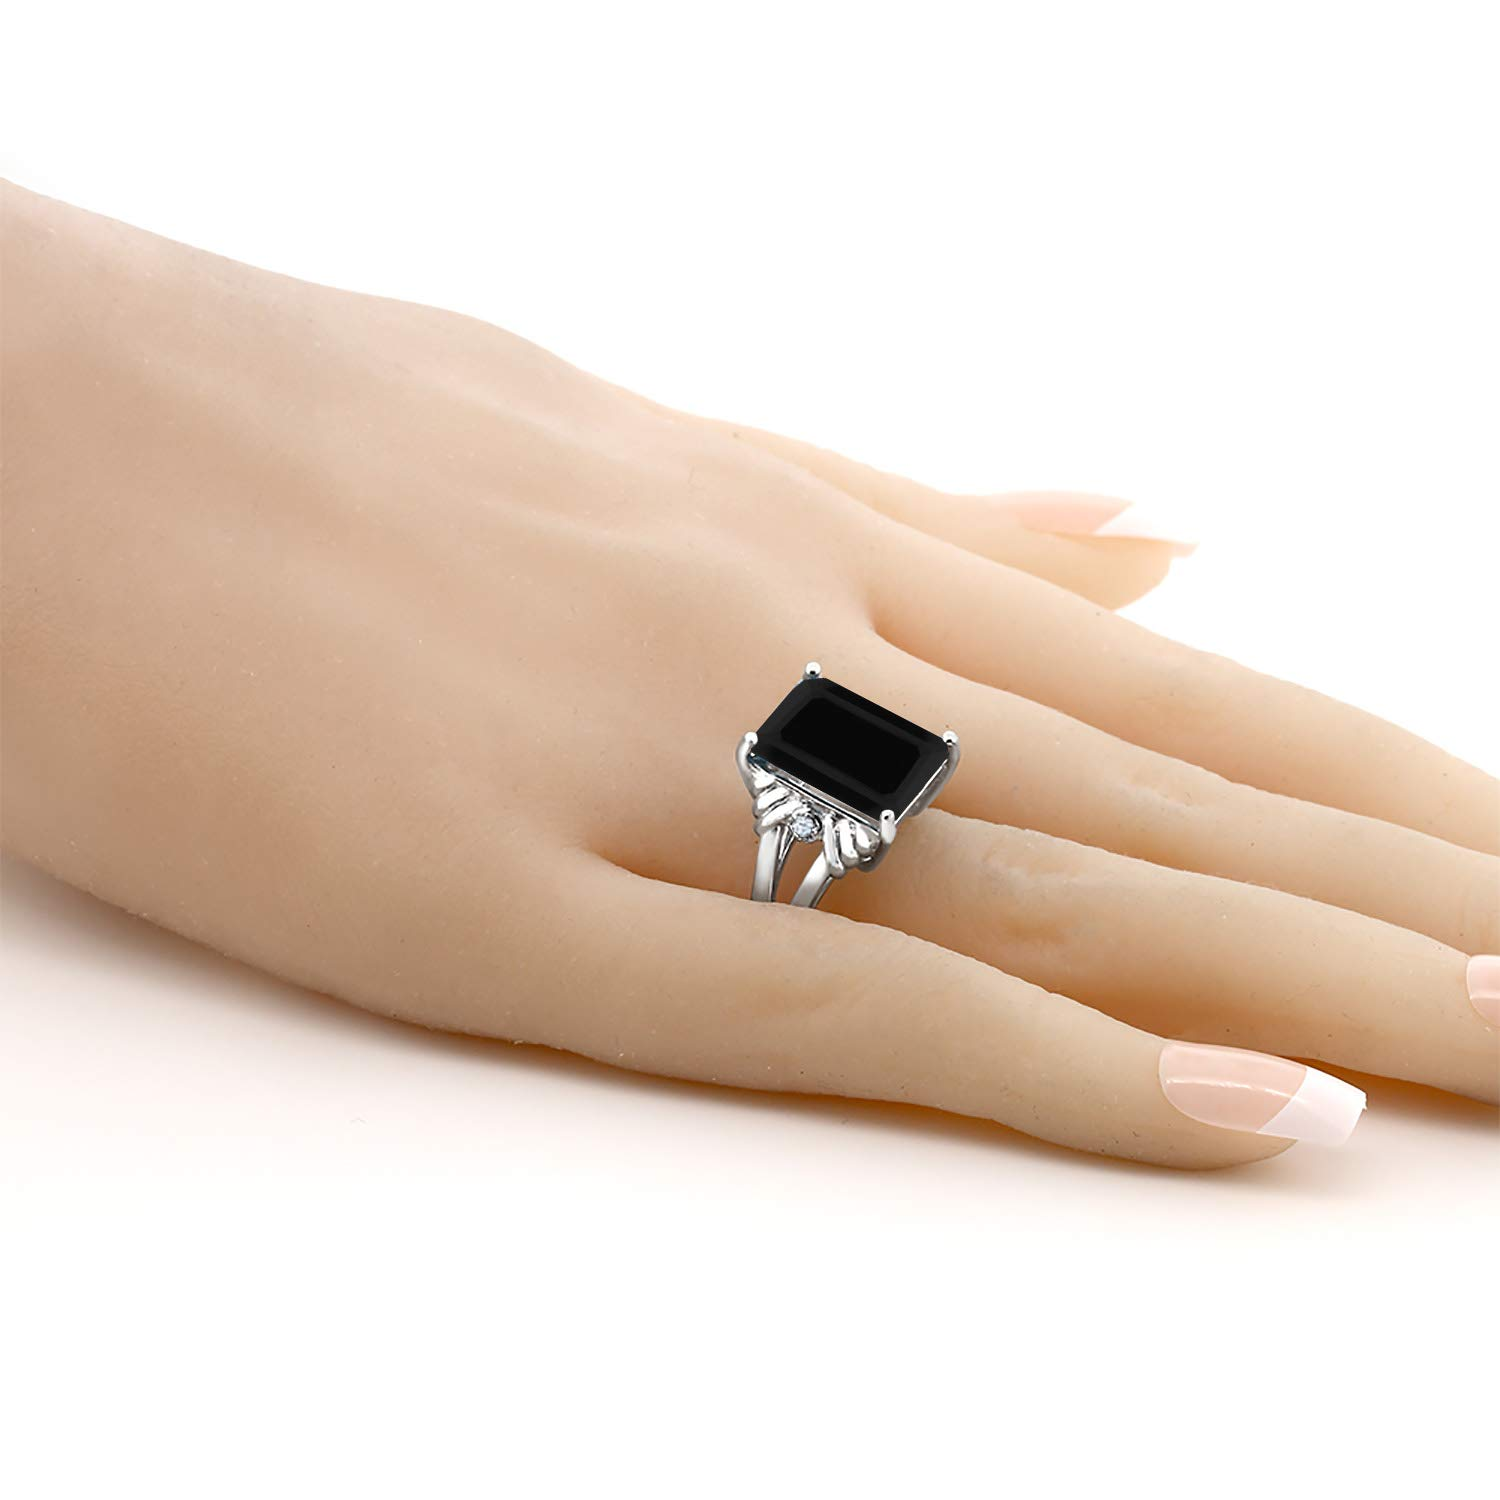 Gem Stone King Black Onyx White Created Sapphire Gemstone 925 Sterling Silver Women s Ring 7.39 Cttw Emerald Cut Available 5,6,7,8,9